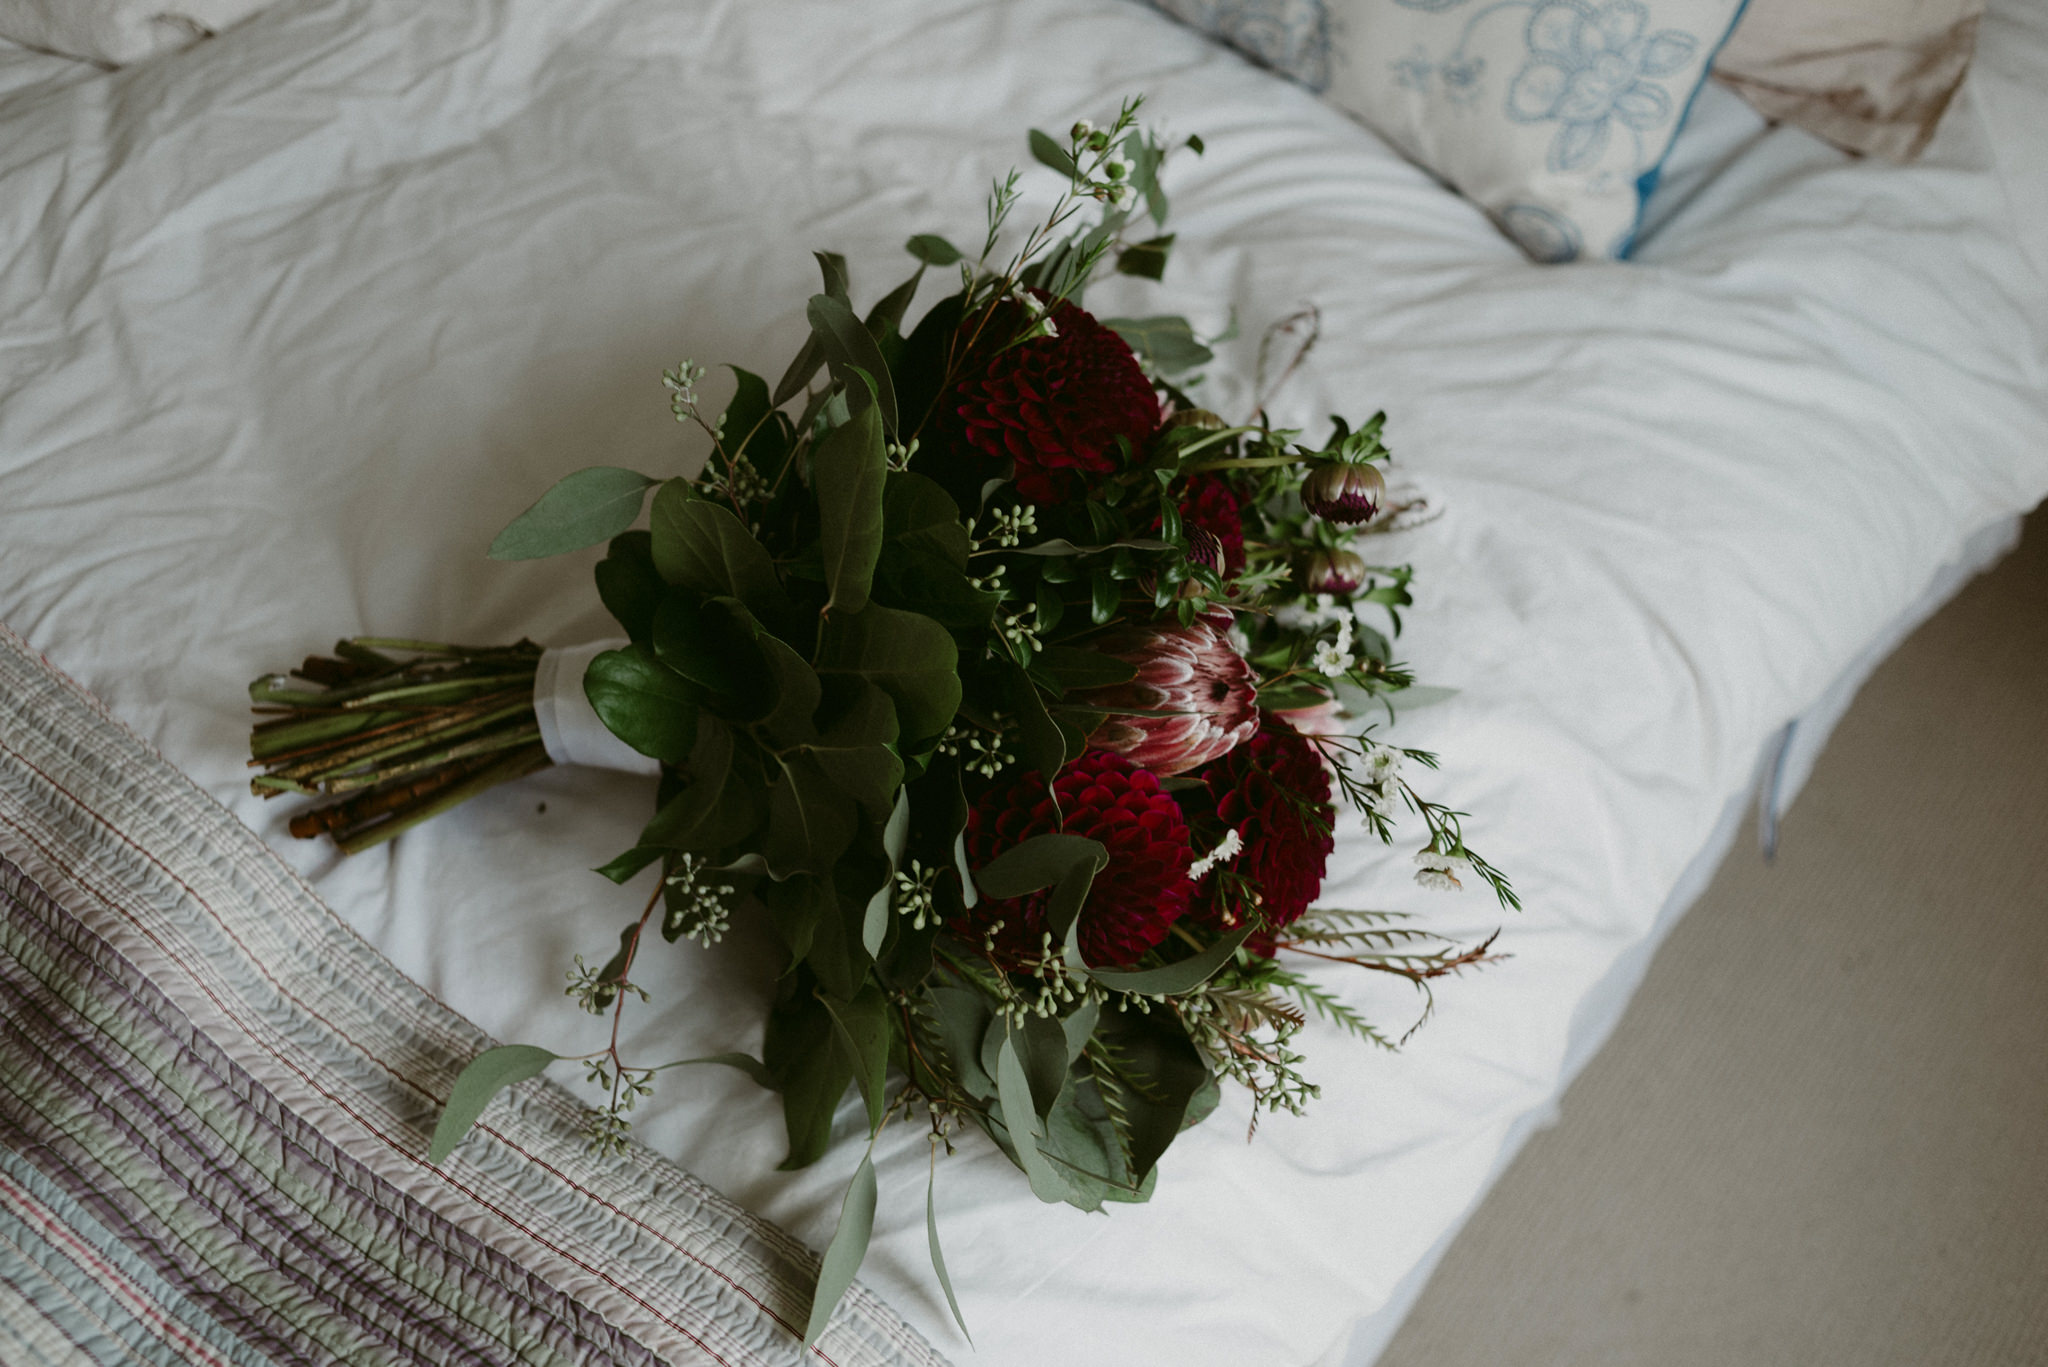 Green and maroon wedding bouquet on bed